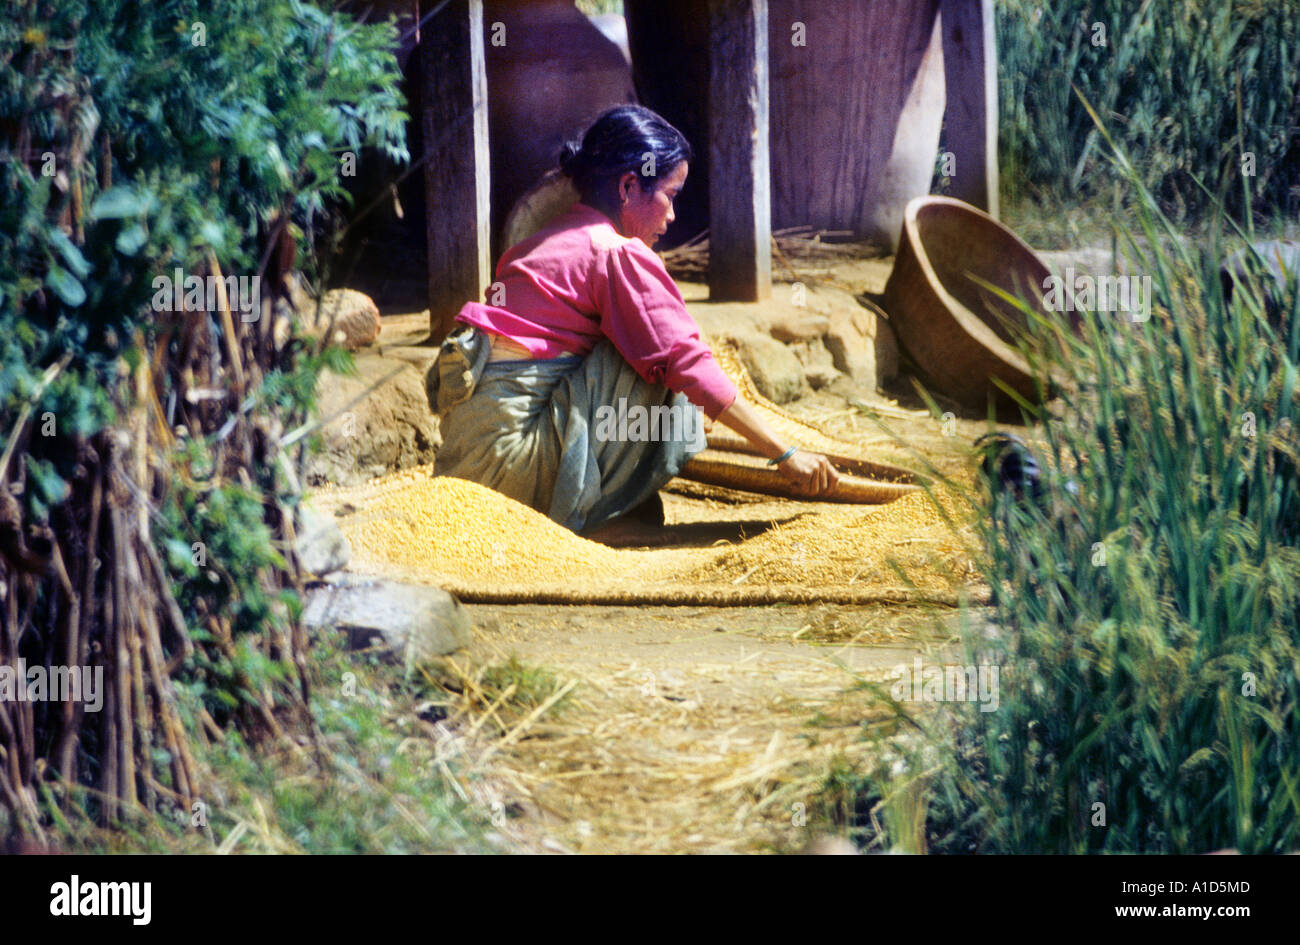 girl Nepal Asia candid unposed winnowing grain on mat harvest agriculture rural portrait rice wheat basket weave woven straw - Stock Image